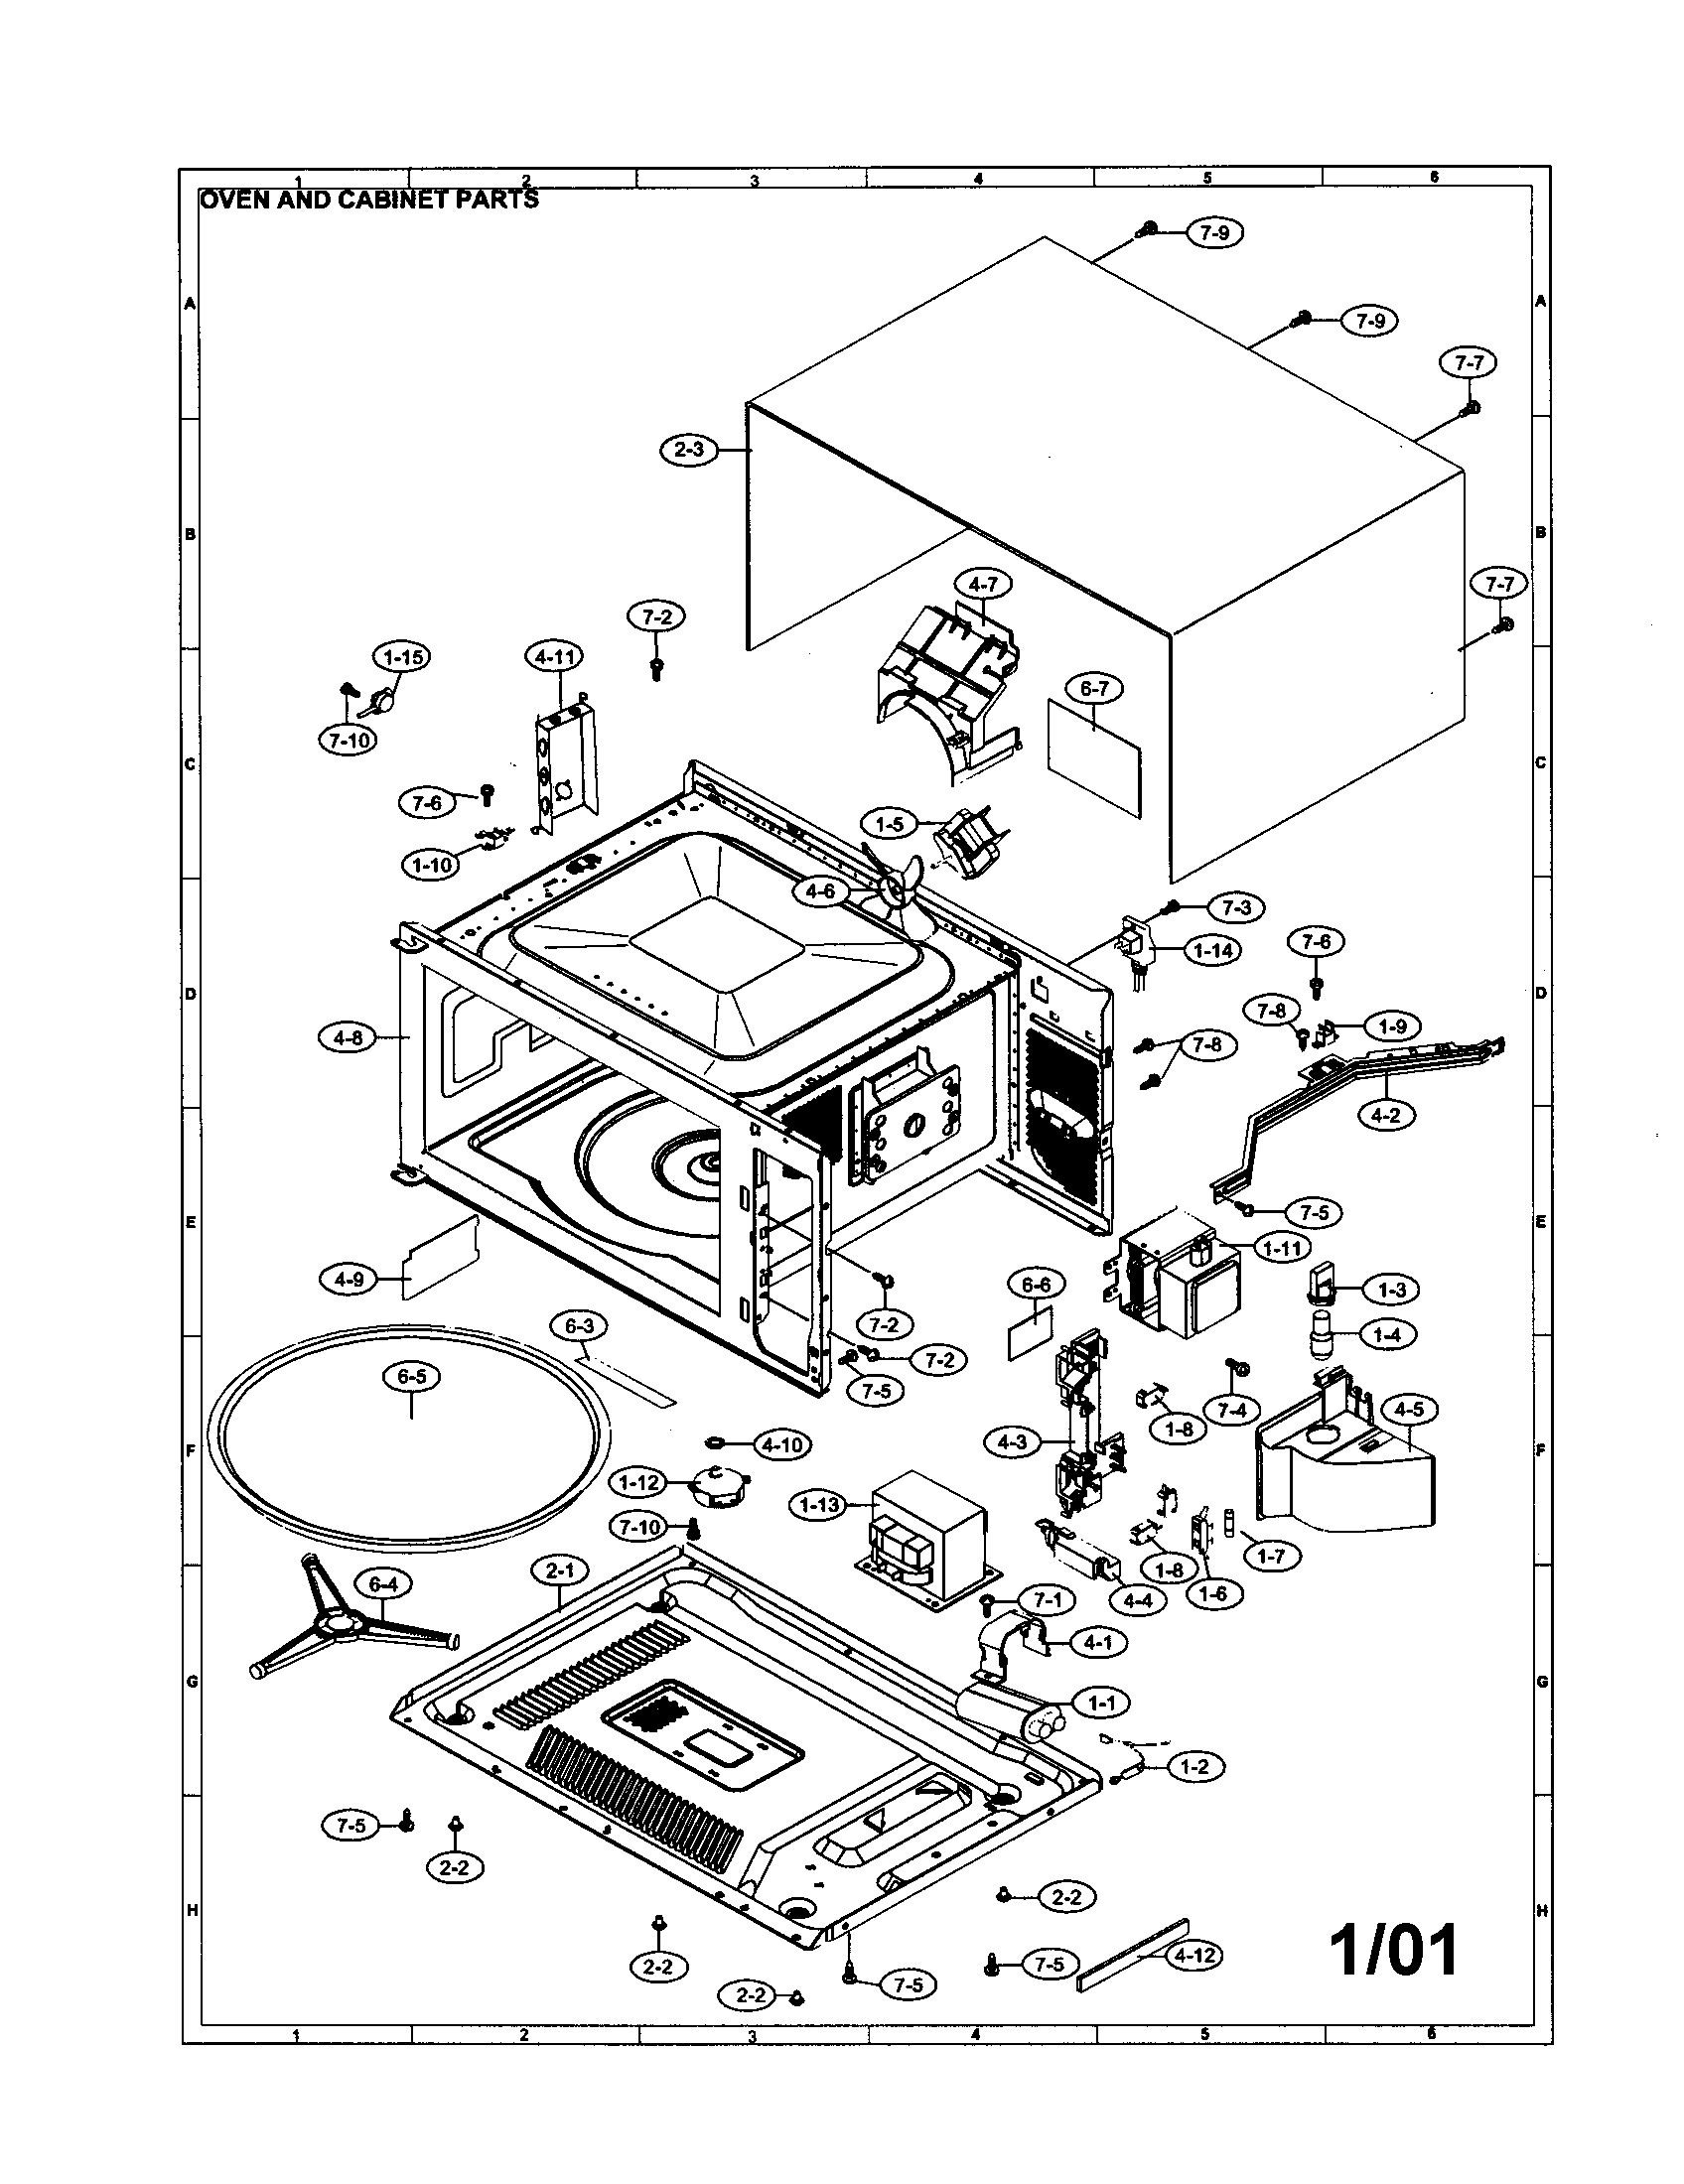 Wave Guide Cover for Sharp R420DK Microwave